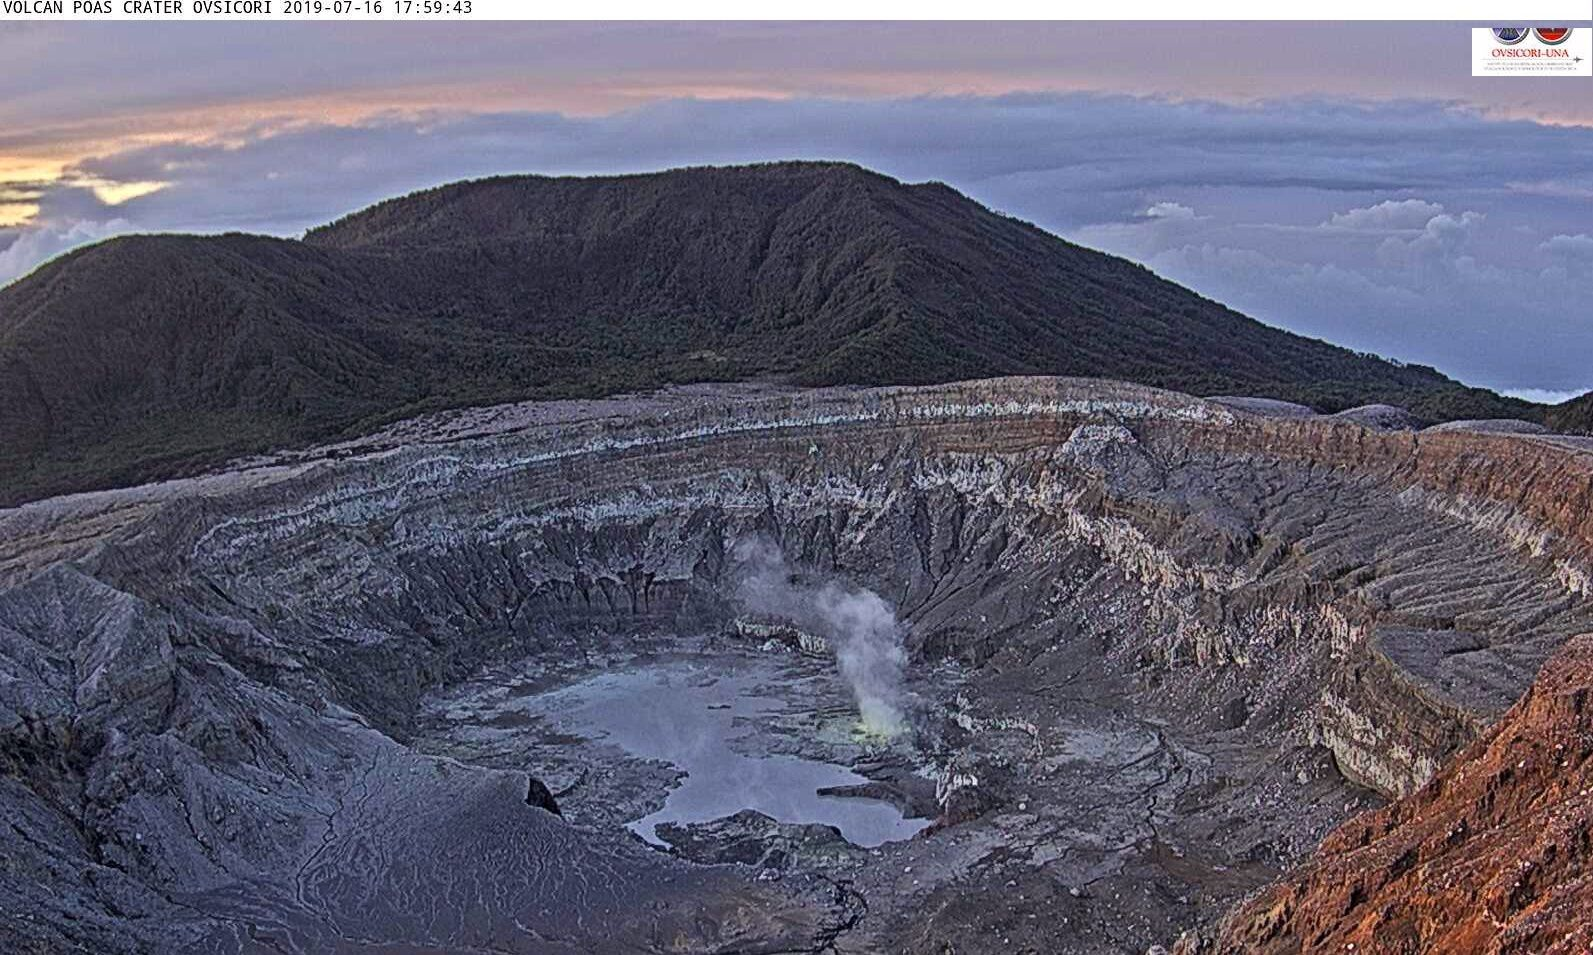 Poas - recharge of the crater lake - photo Ovsicori 16.07.2019 / 17h59